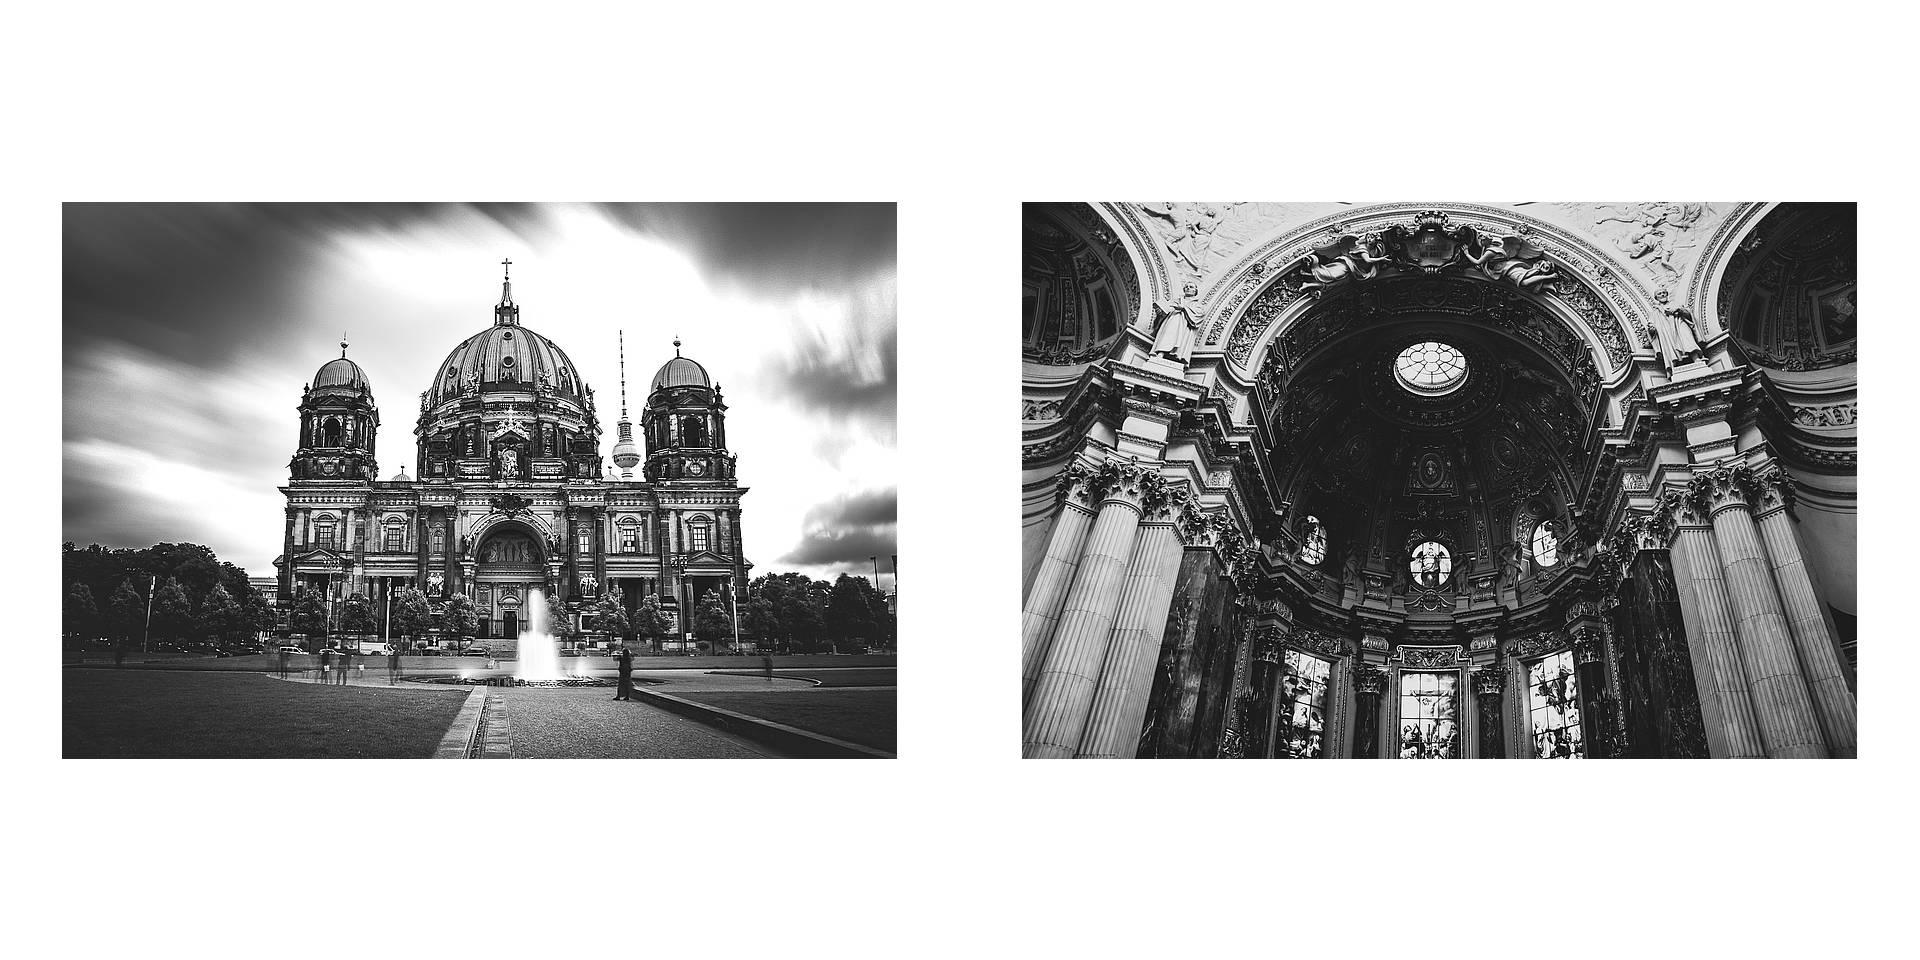 Live your Life - Descubre Berlín - Berliner Dom